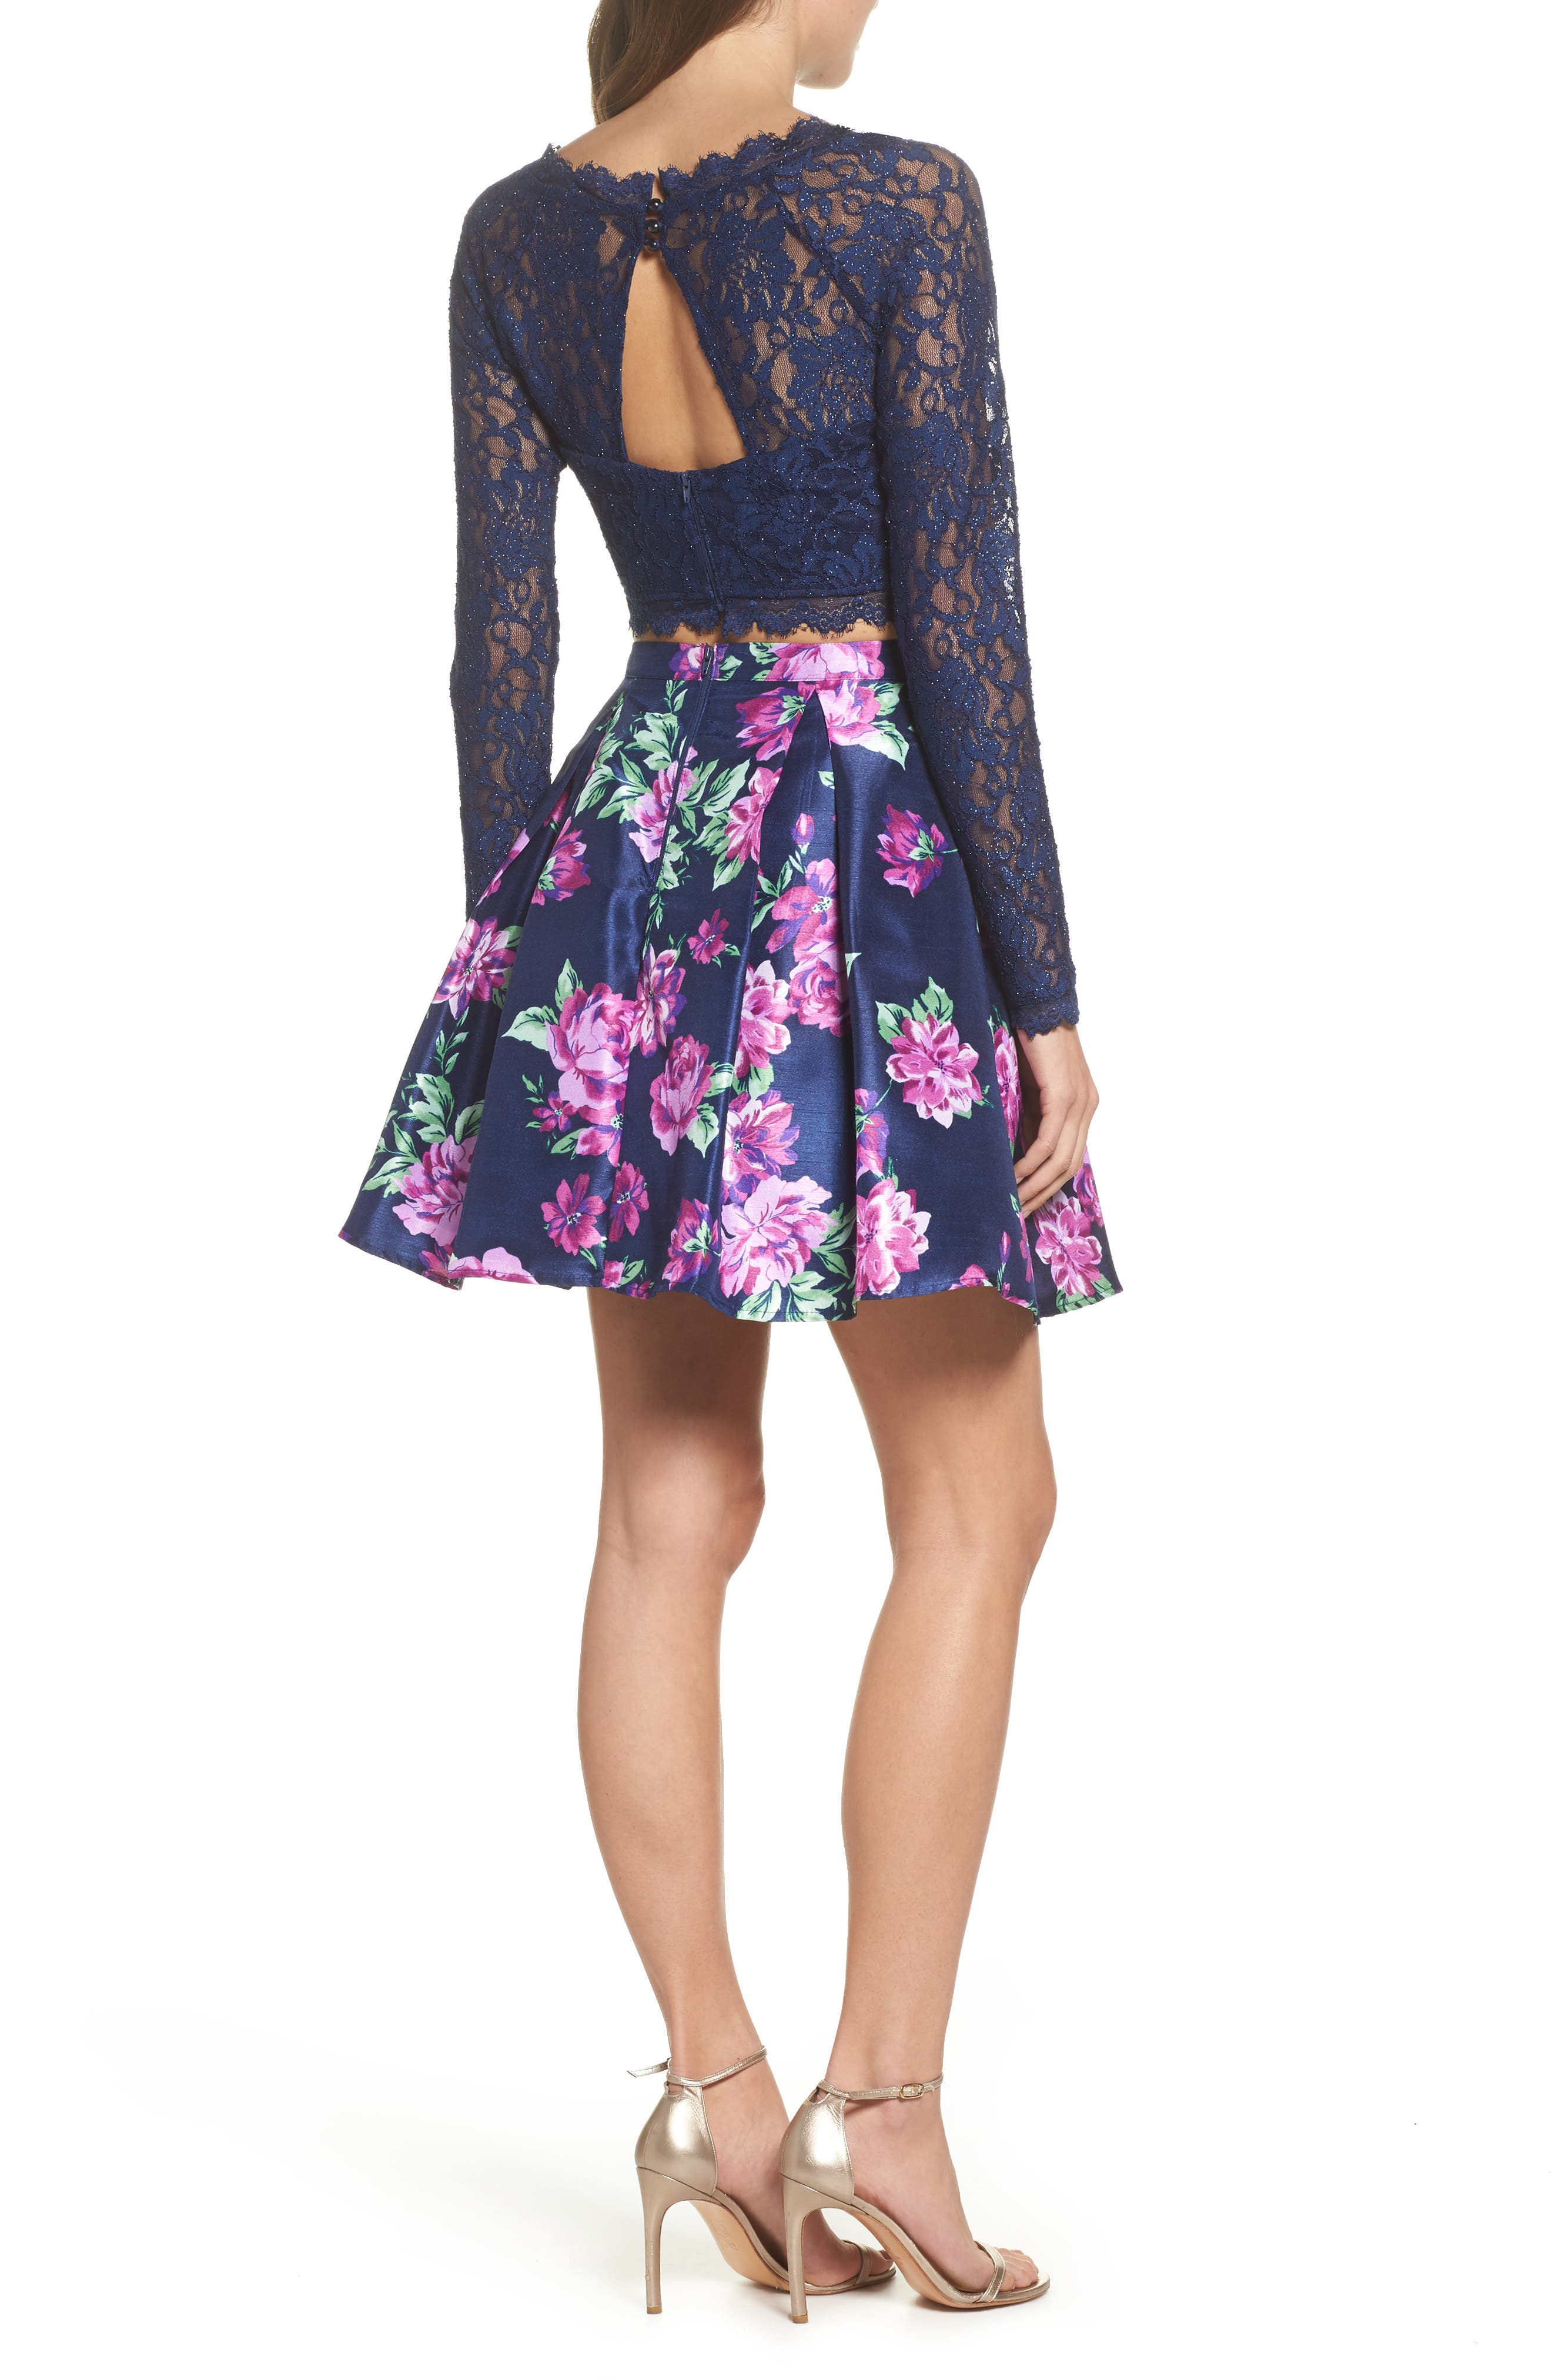 Glitter Lace Two-Piece Dress,                             Alternate thumbnail 2, color,                             Navy/ Violet